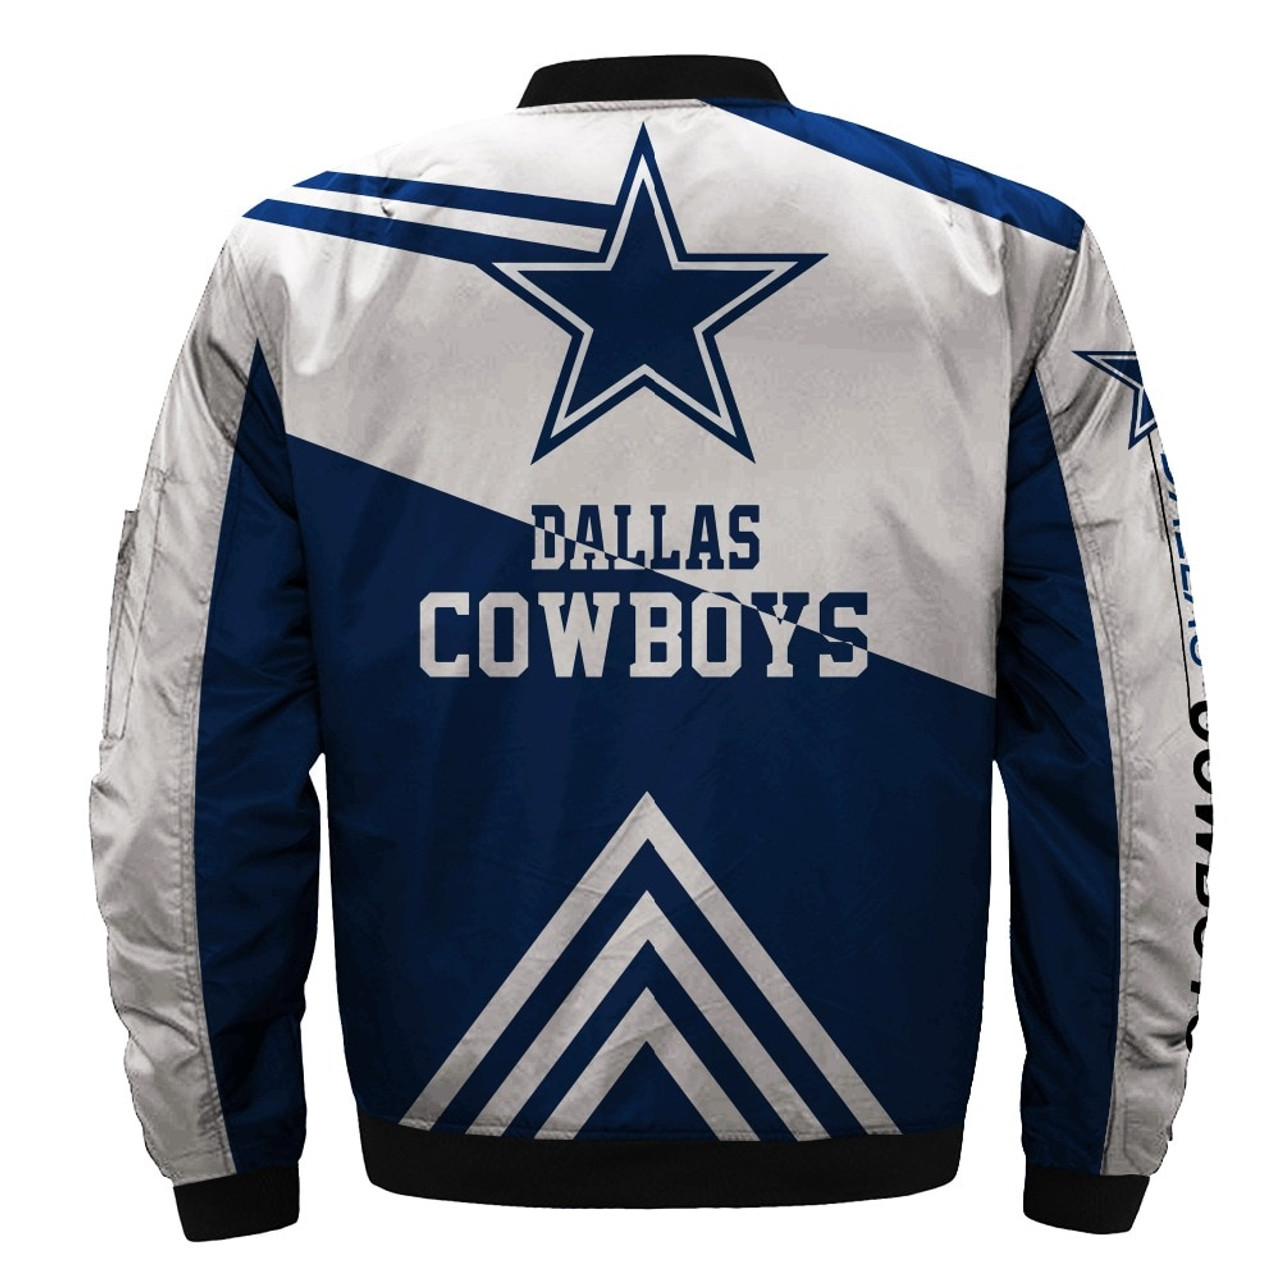 premium selection 060e6 3e18a **(OFFICIALLY-LICENSED-N.F.L.DALLAS-COWBOYS-JACKETS/CLASSIC-COWBOYS-TEAM-COLORS  & OFFICIAL-COWBOYS-LOGOS,BOMBER/MA-1 ...